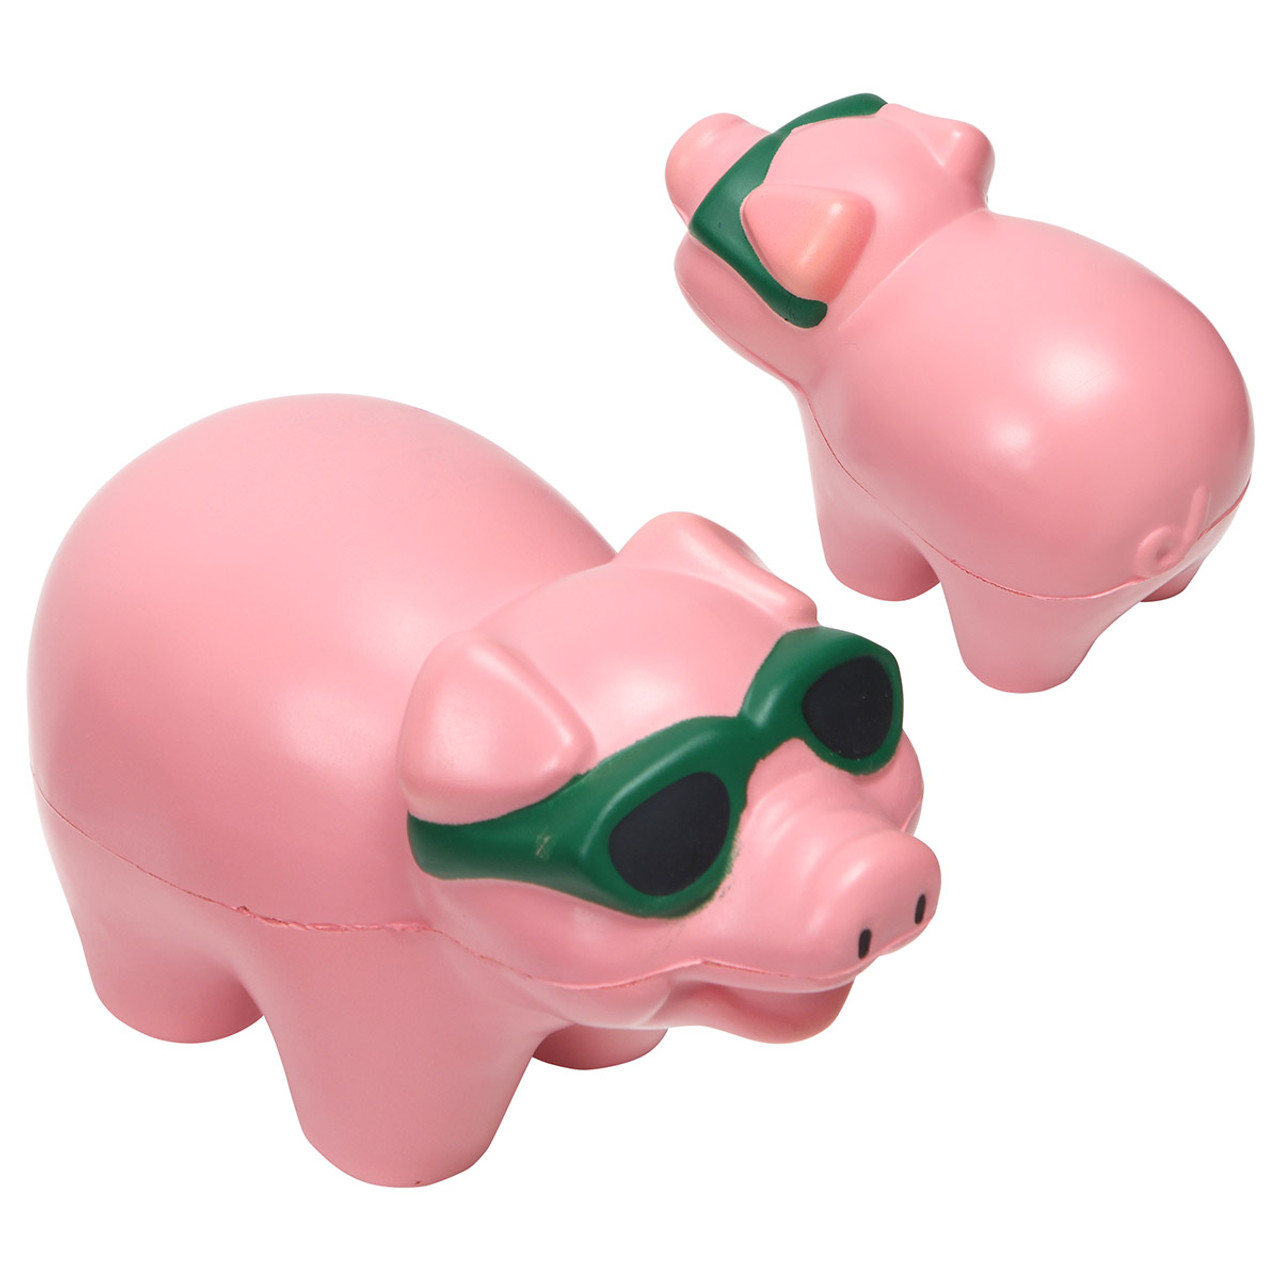 Cool Pig wearing sunglasses, foam Stress Reliever; front and back